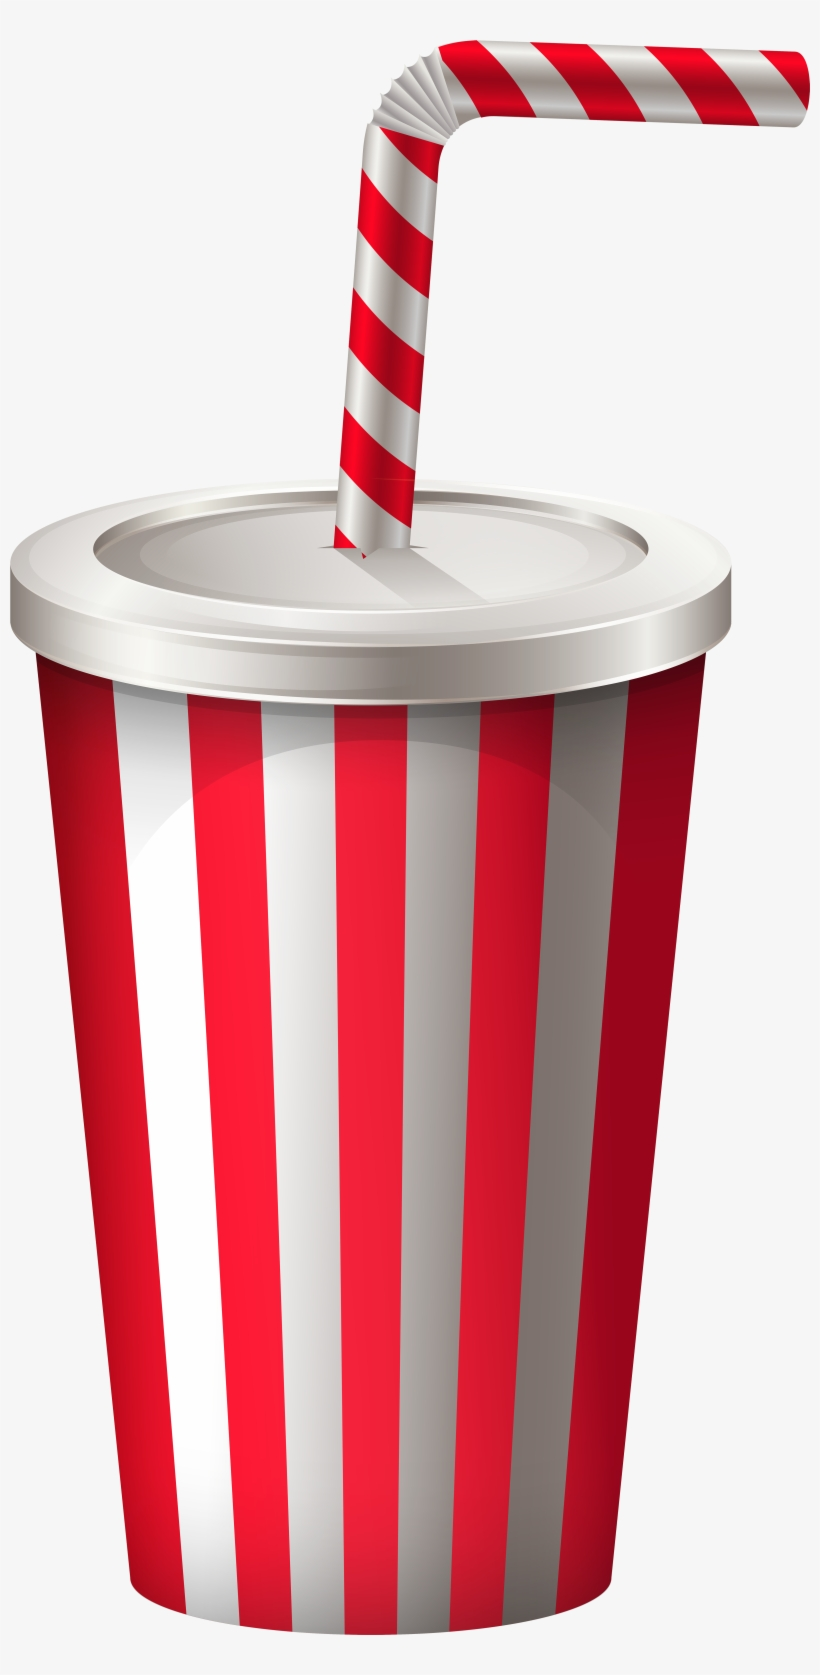 Soda Cup Png PNG Images.